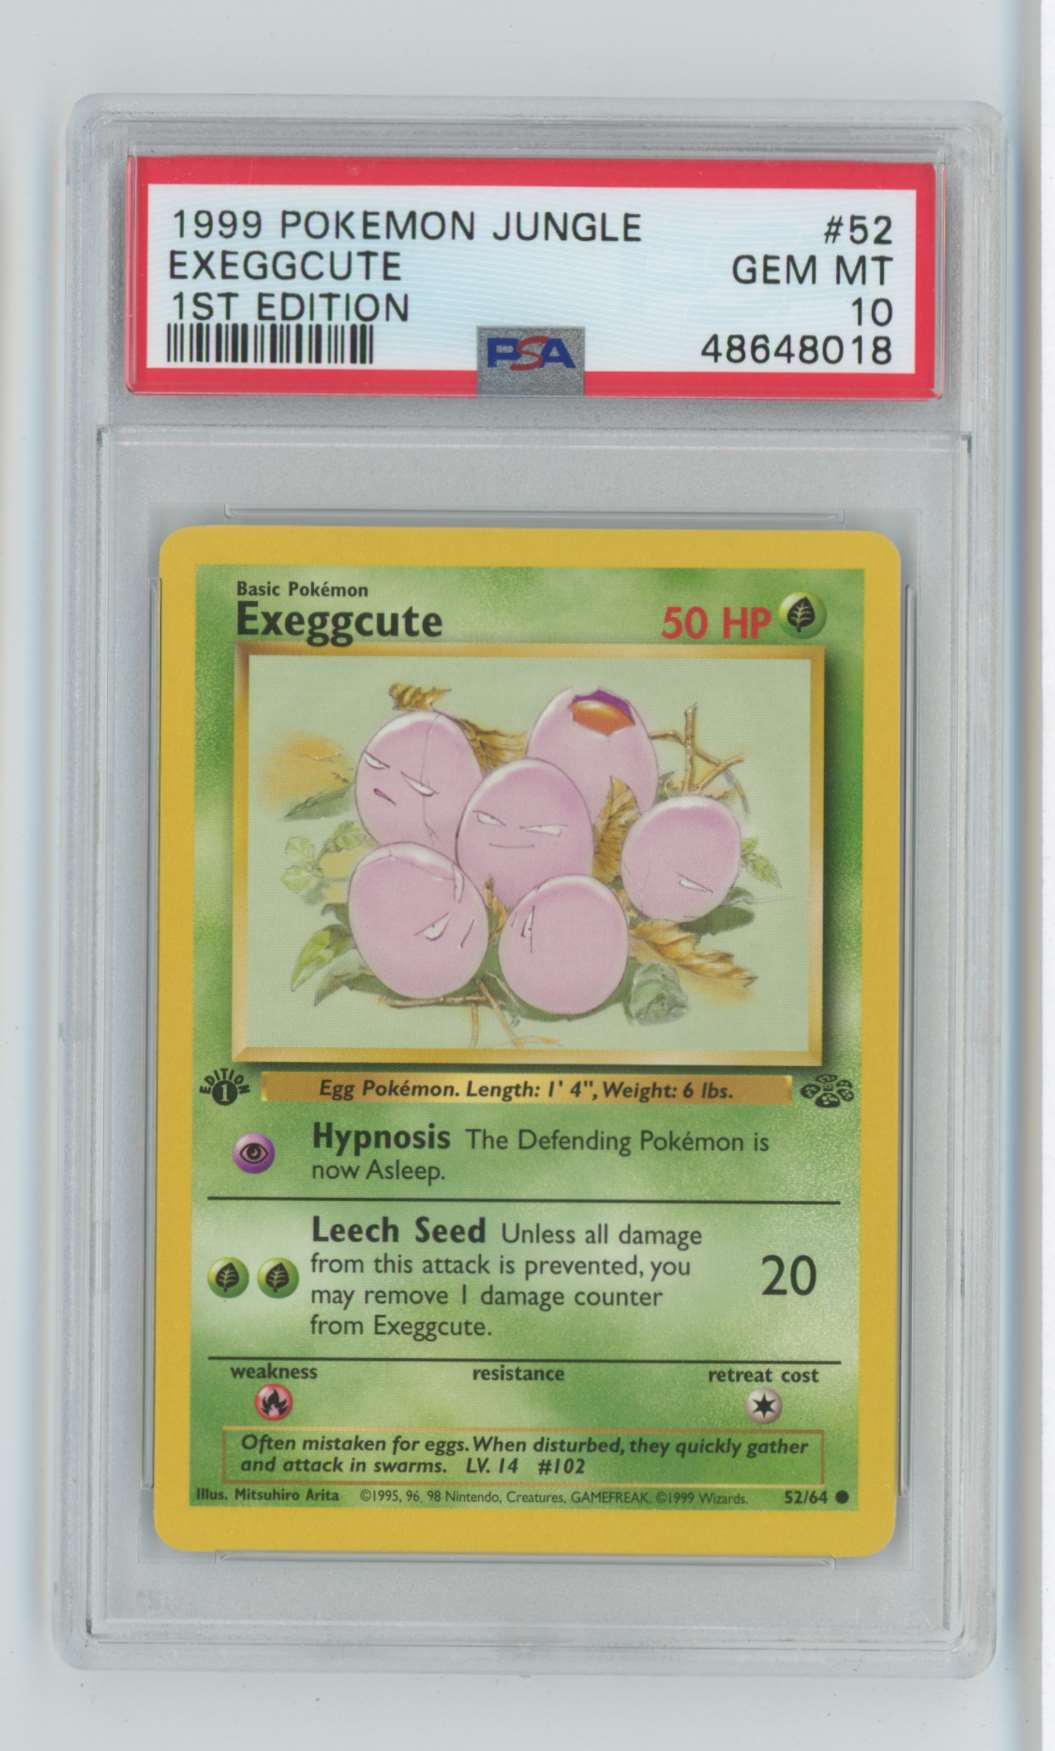 1999 Pokemon Jungle 1st Edition Exeggcute #52 card front image